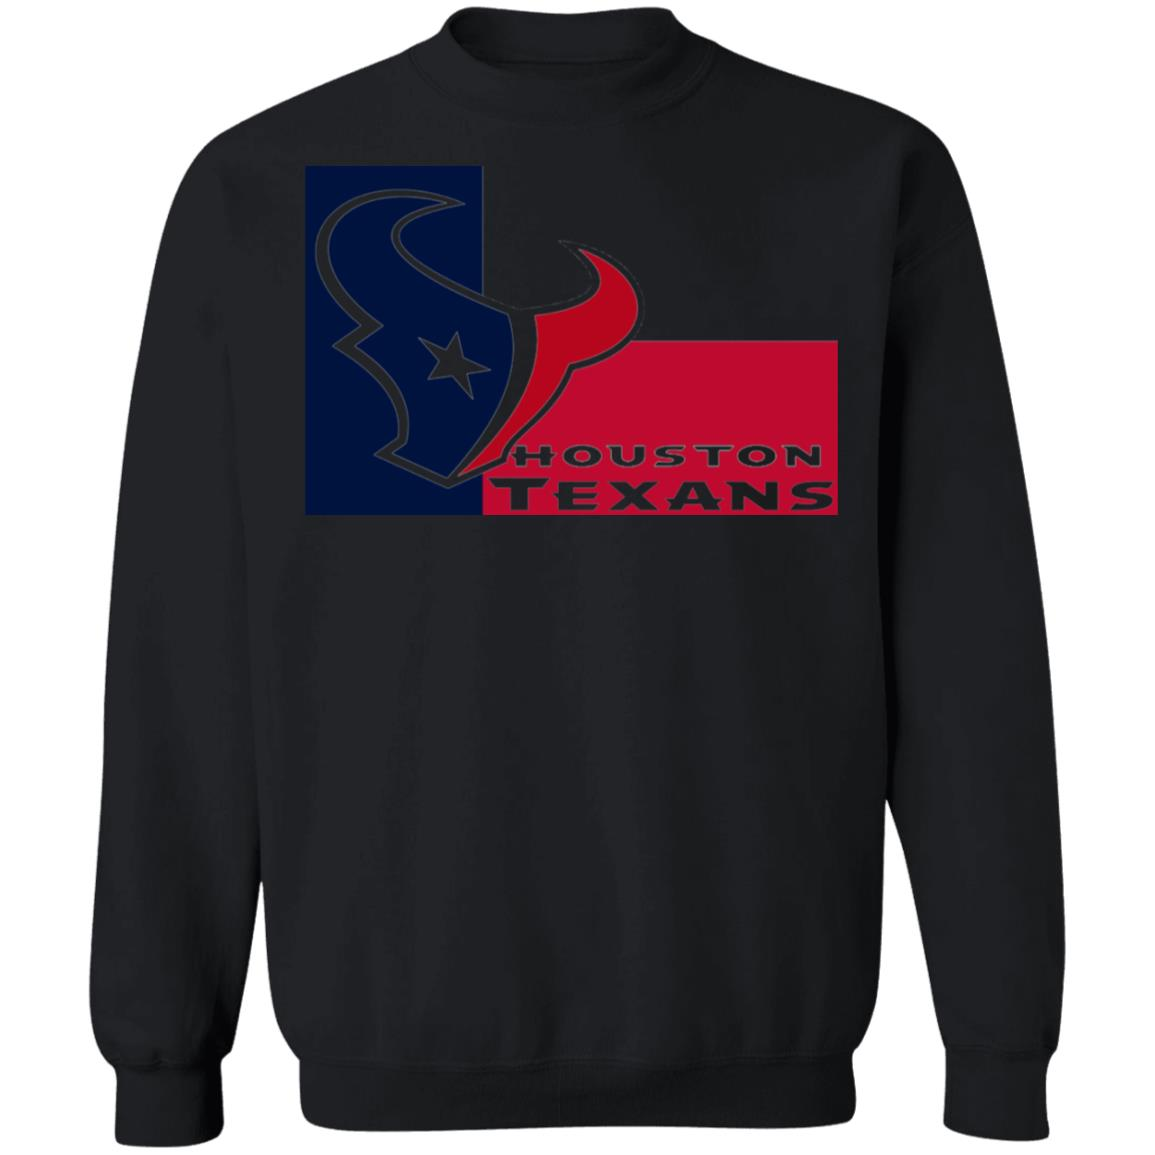 Houston Texans Cincinnati Bengals Jacksonville Pullover Sweatshirt  8 oz.